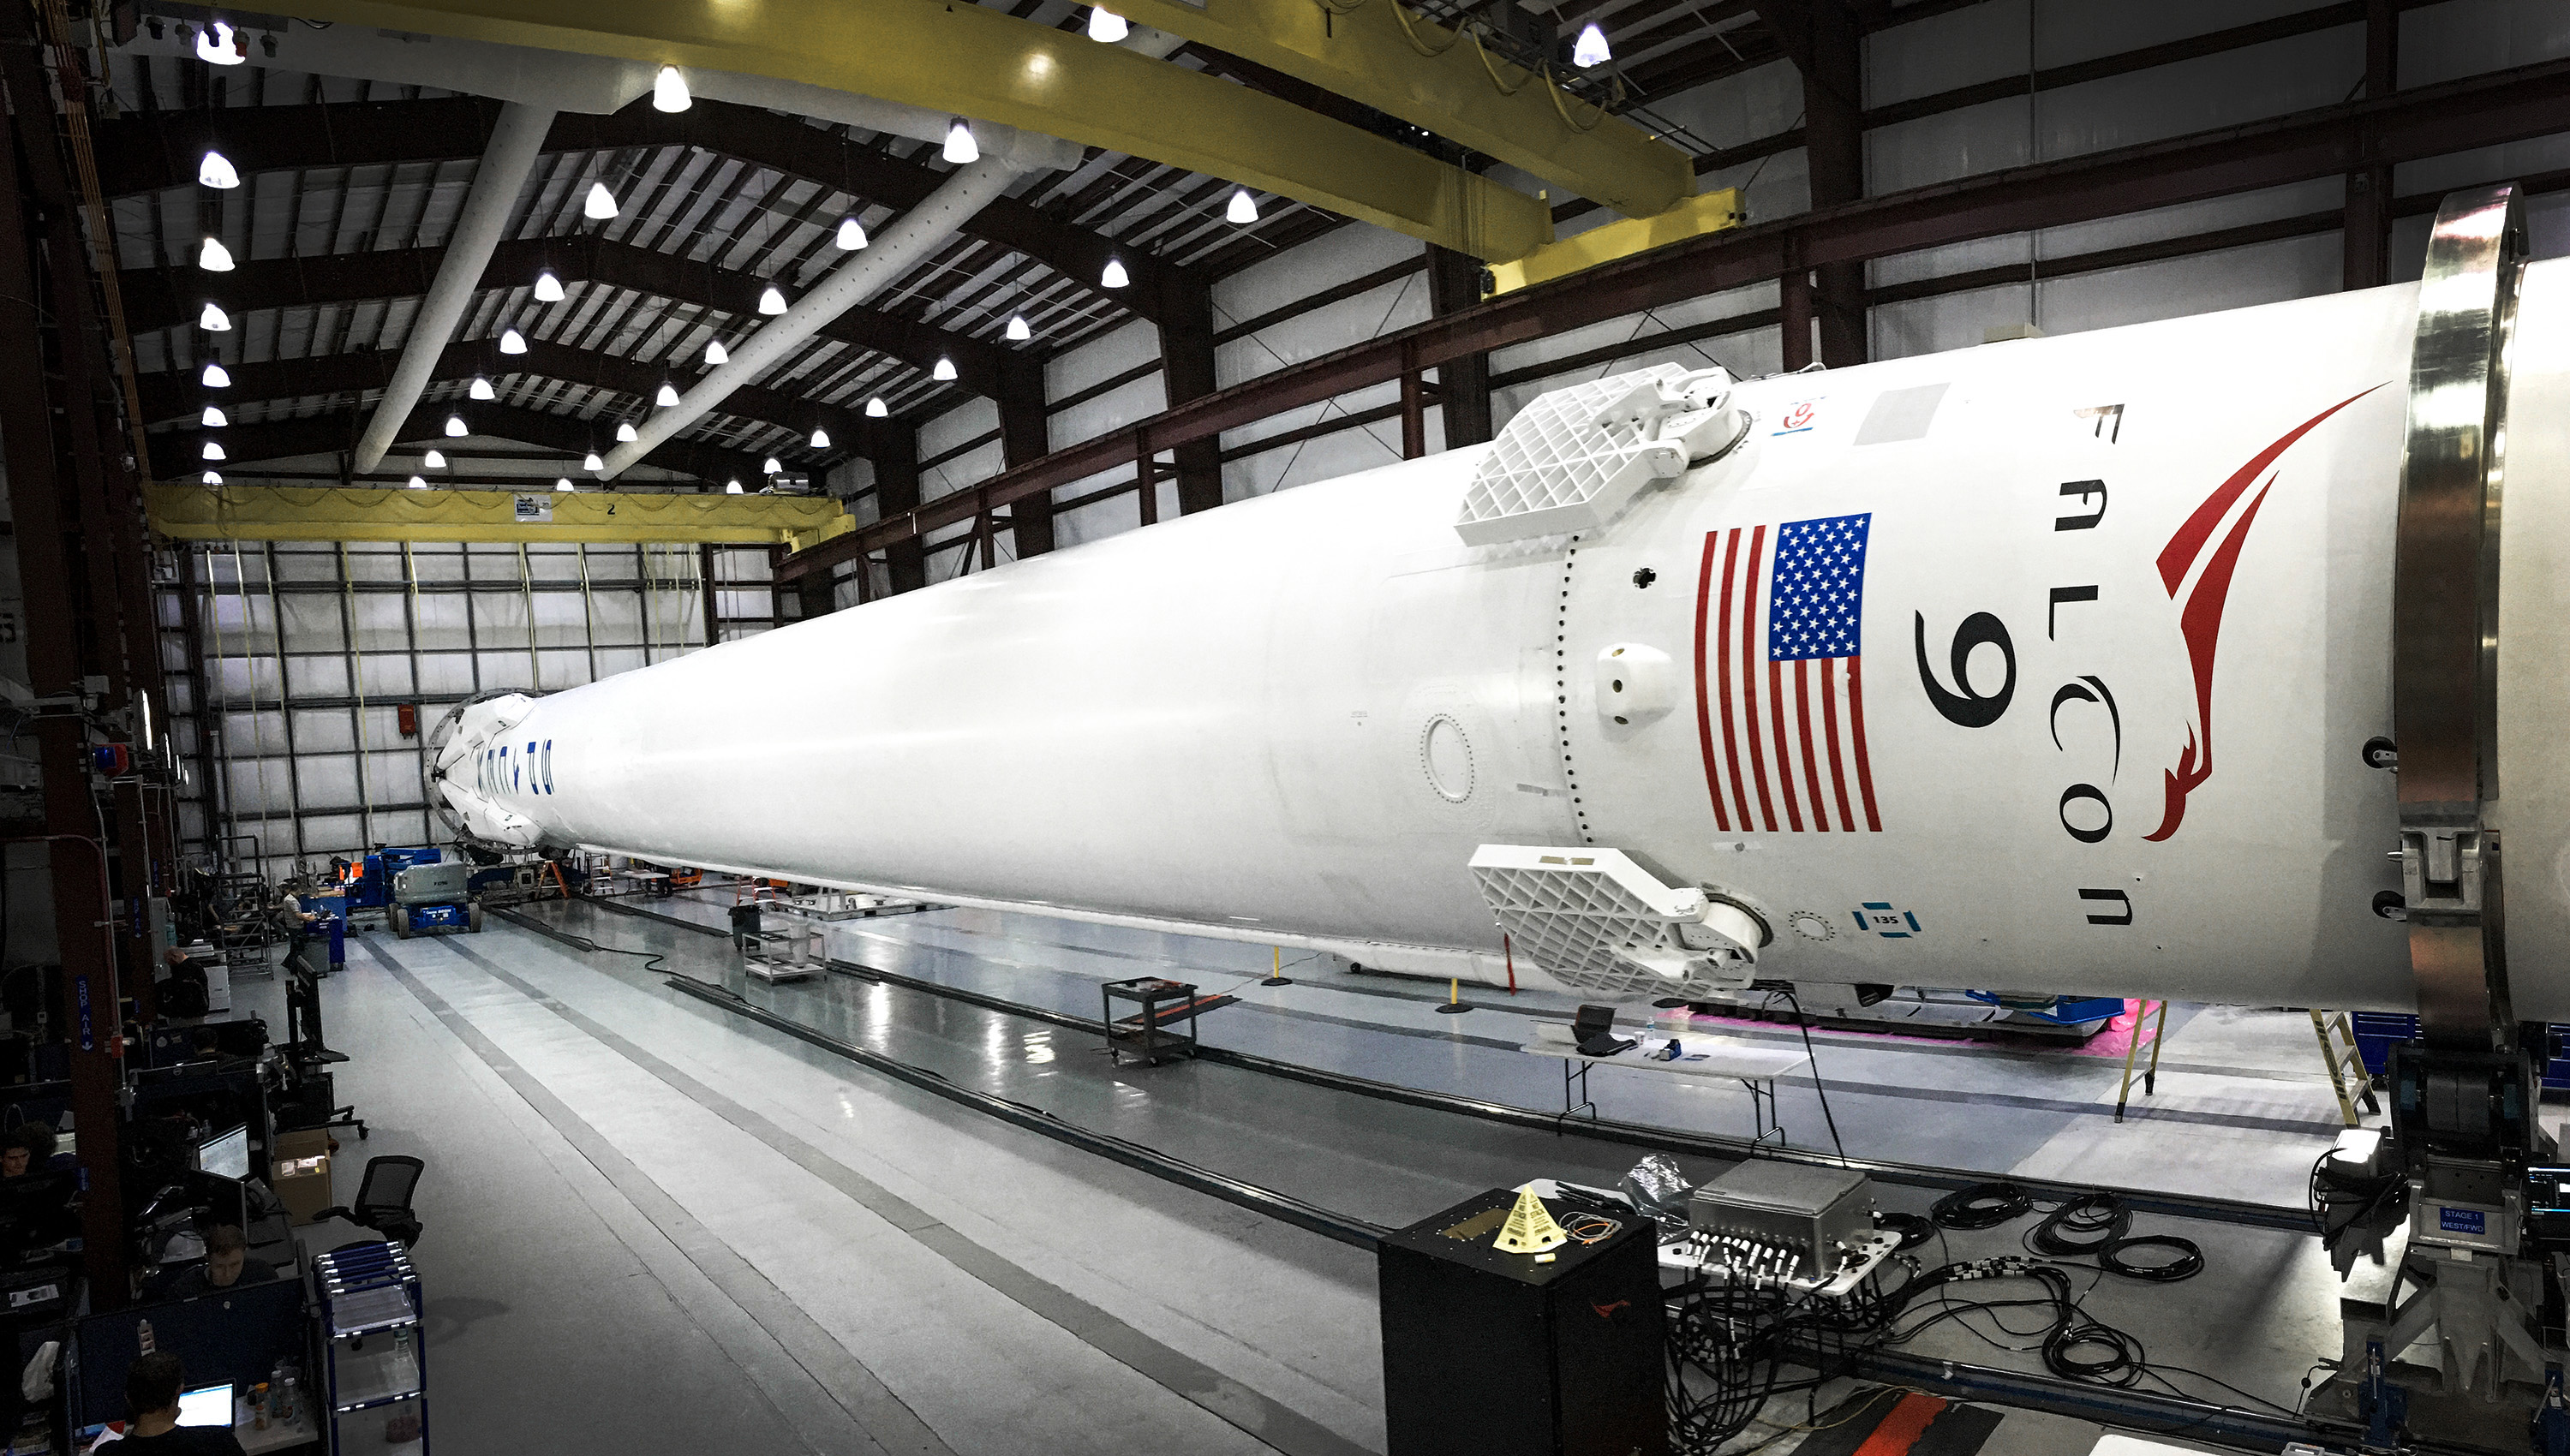 note that those are the old old fins from falcon 9 v1 1 the previous generation fins